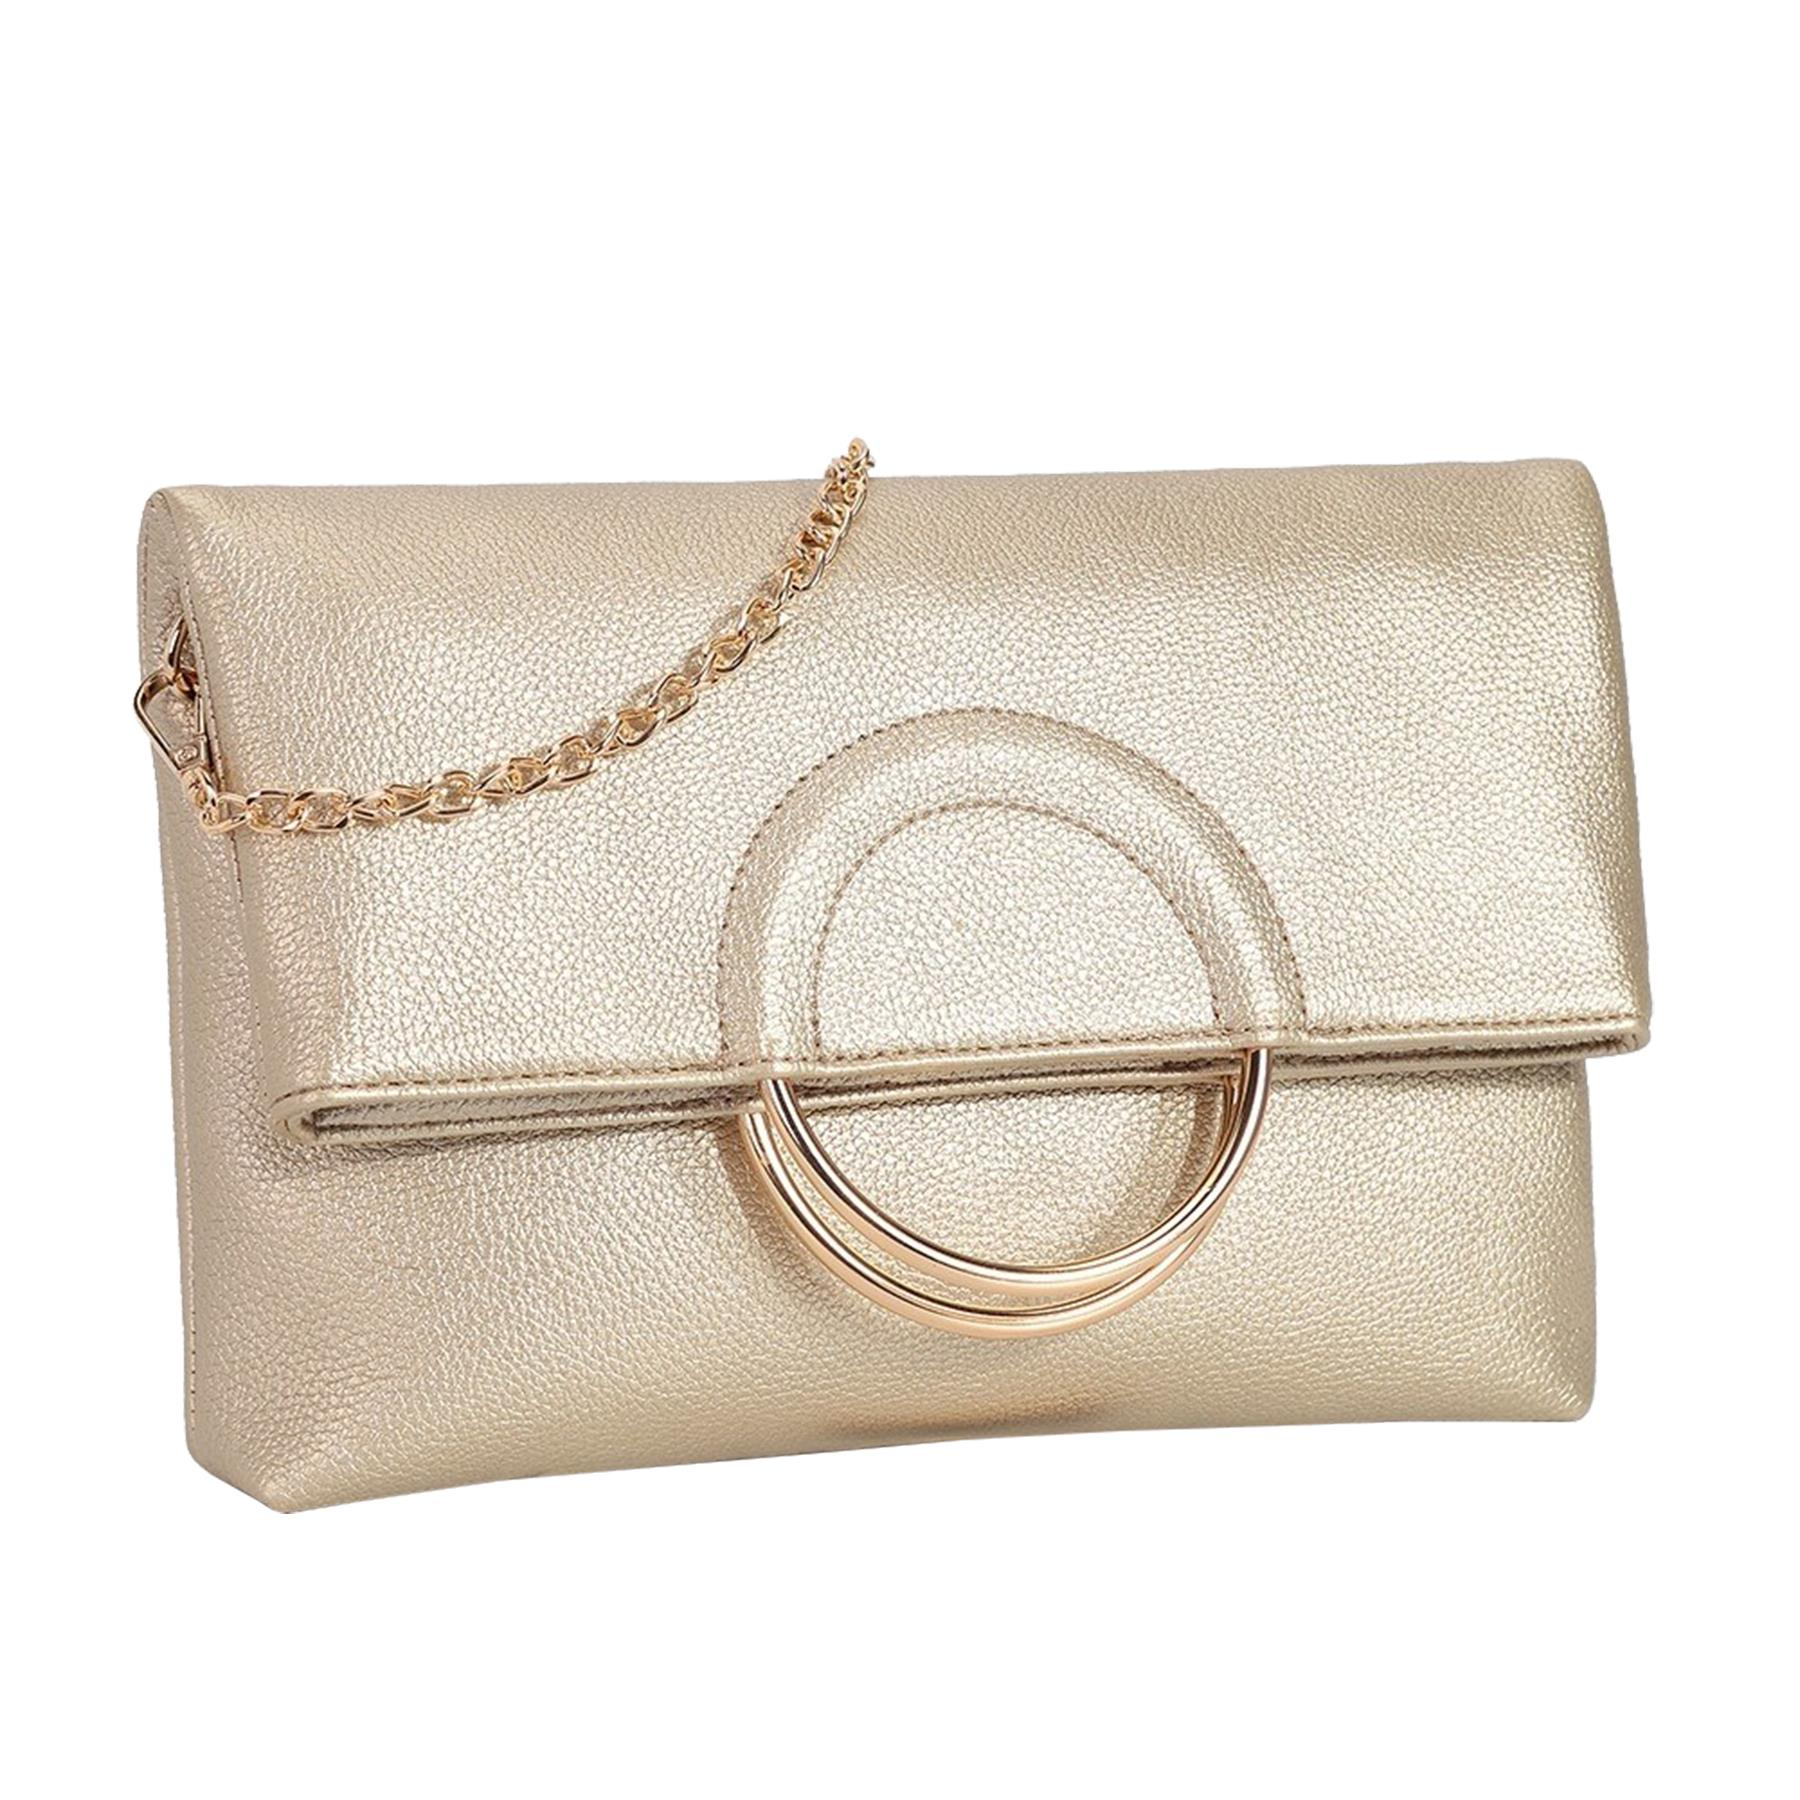 New-Women-s-Metallic-Ring-Top-Handles-Faux-Leather-Evening-Clutch-Bag thumbnail 9